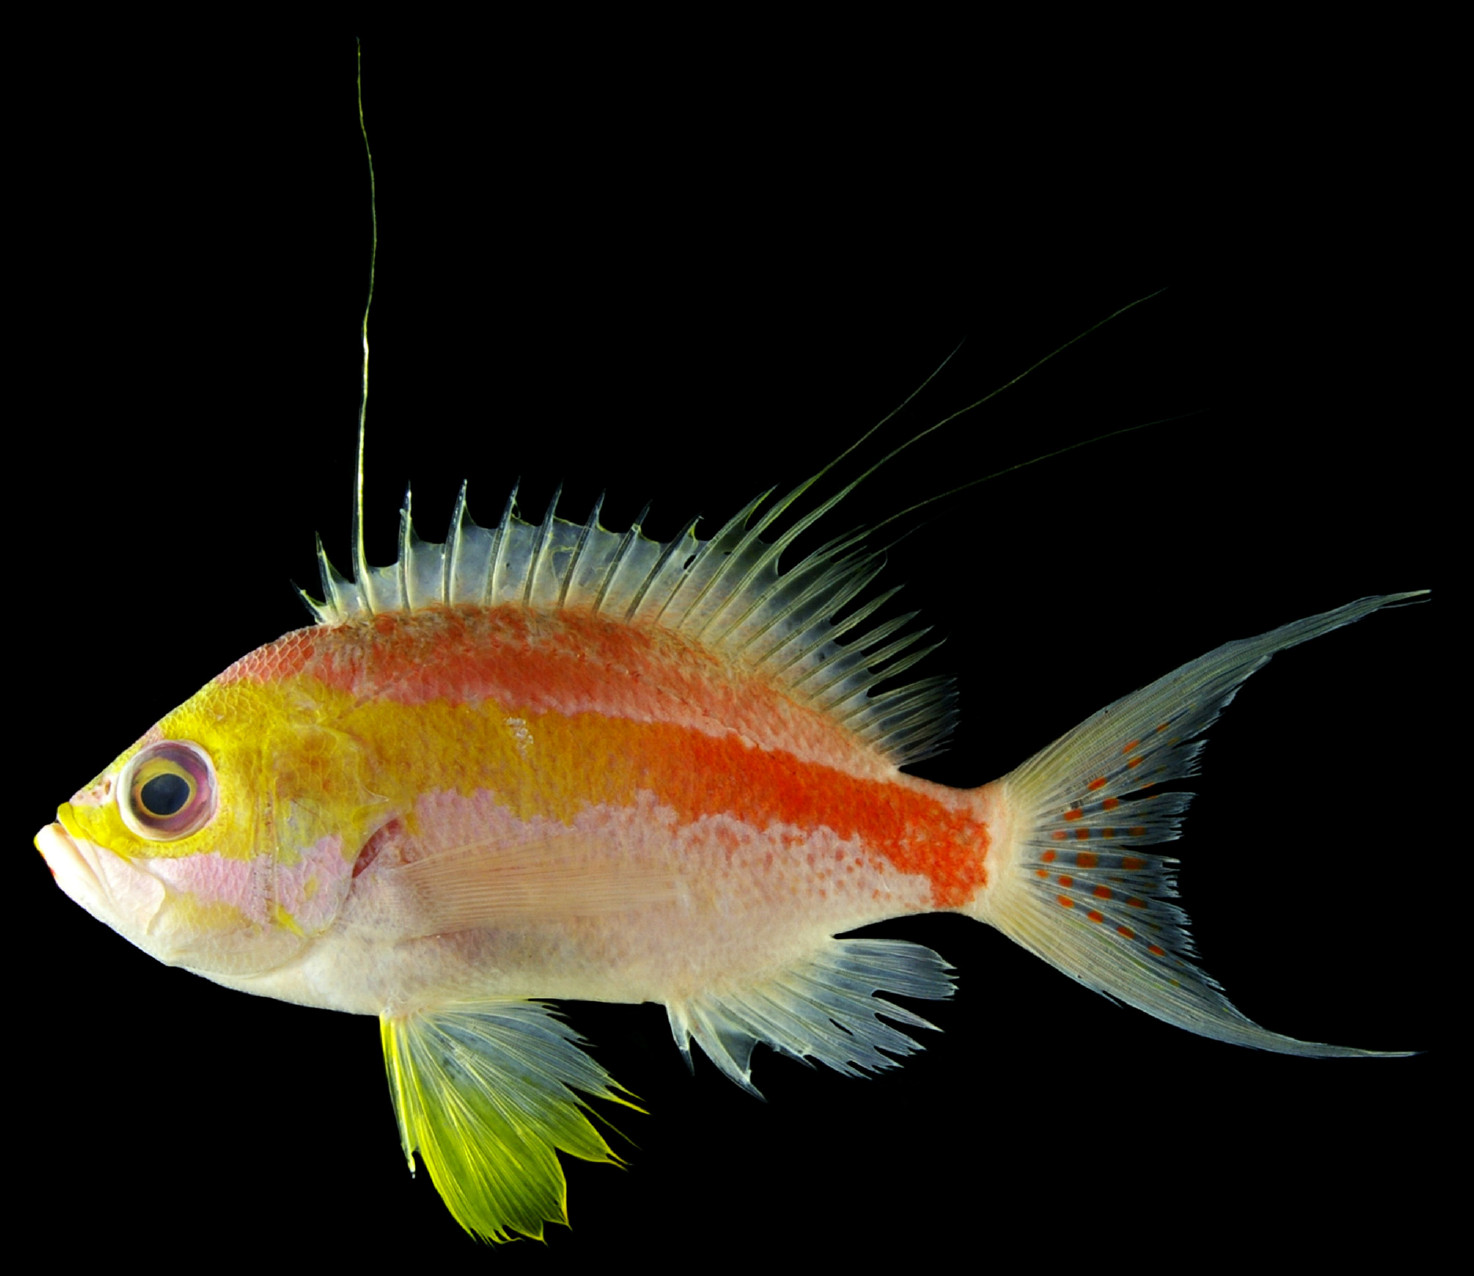 Stunning new reef fish found at market